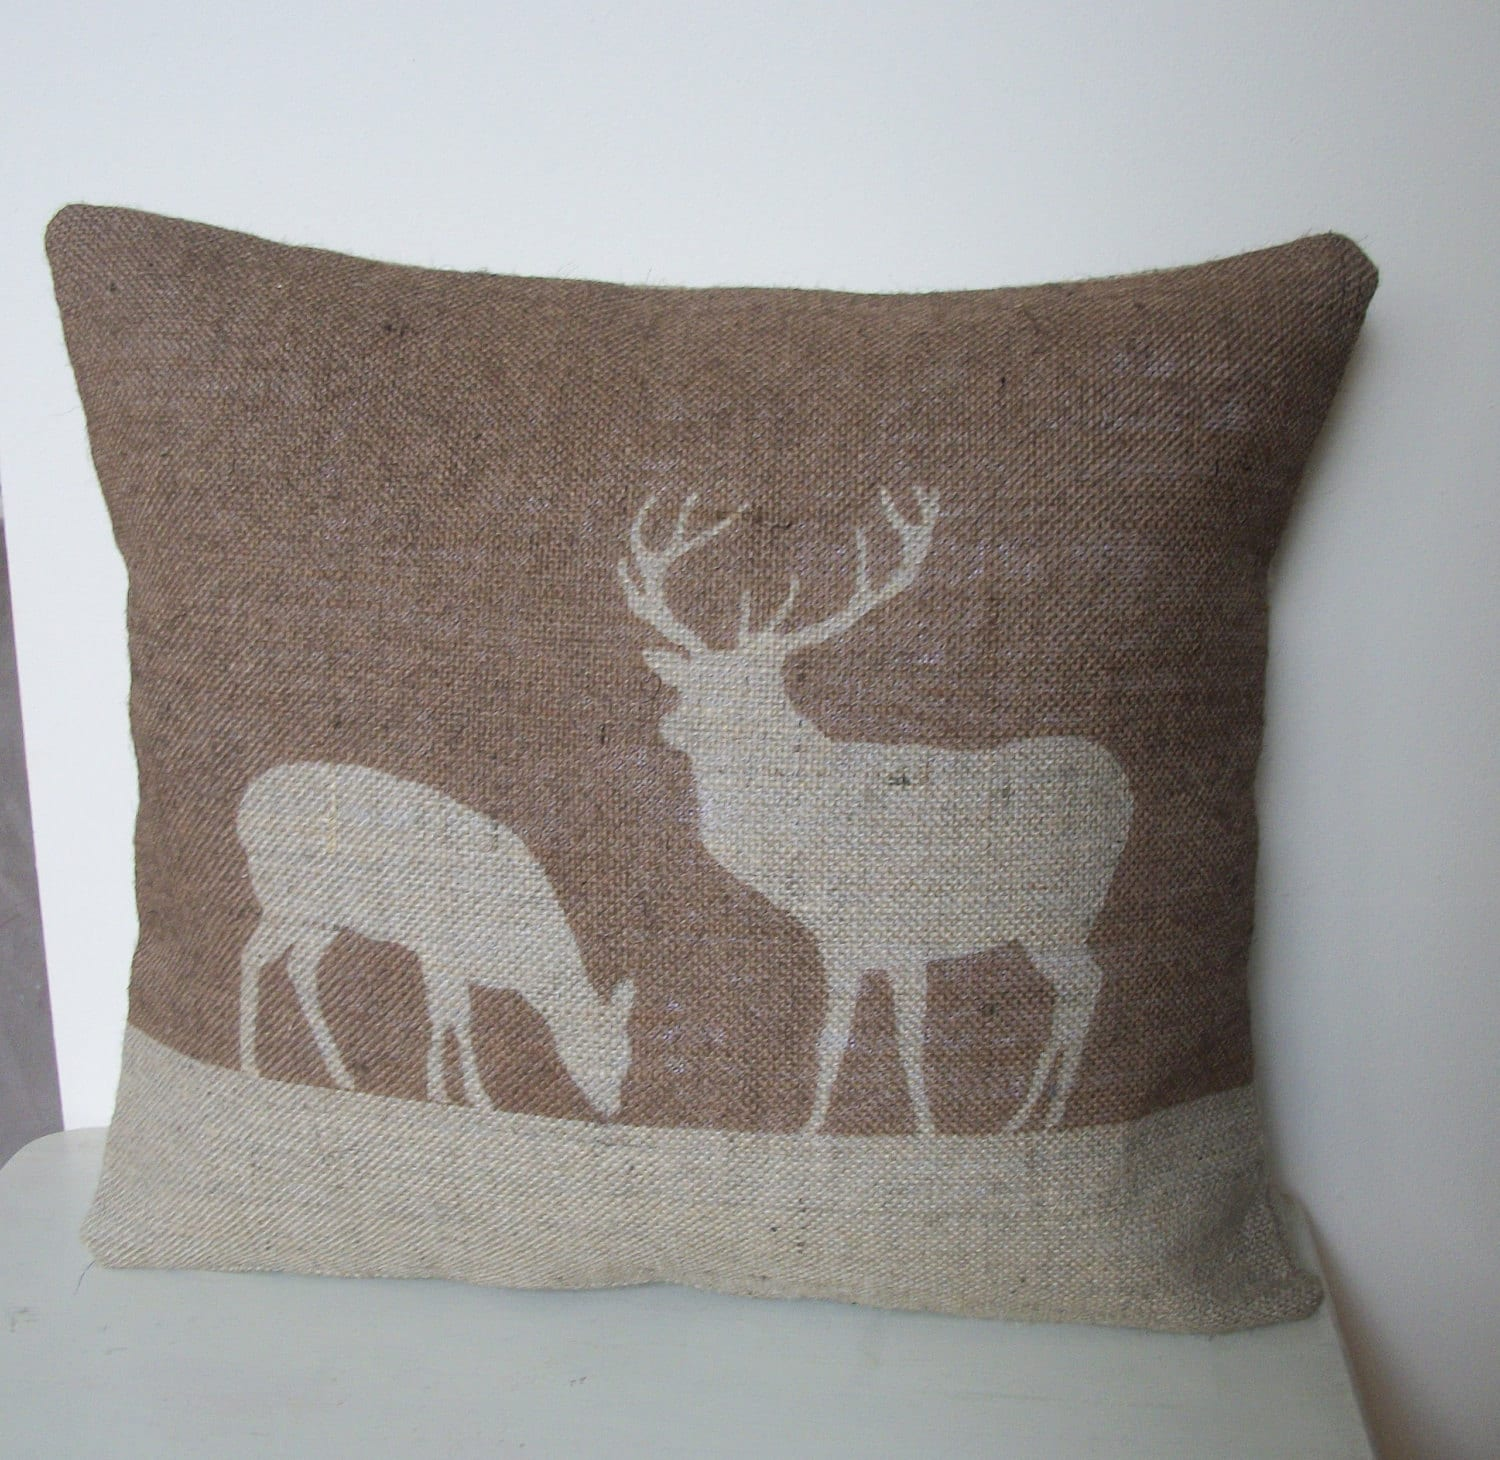 "20% OFF SALE - Stag & Deer Hessian Cushion in Chestnut Brown 14"" x 16"""